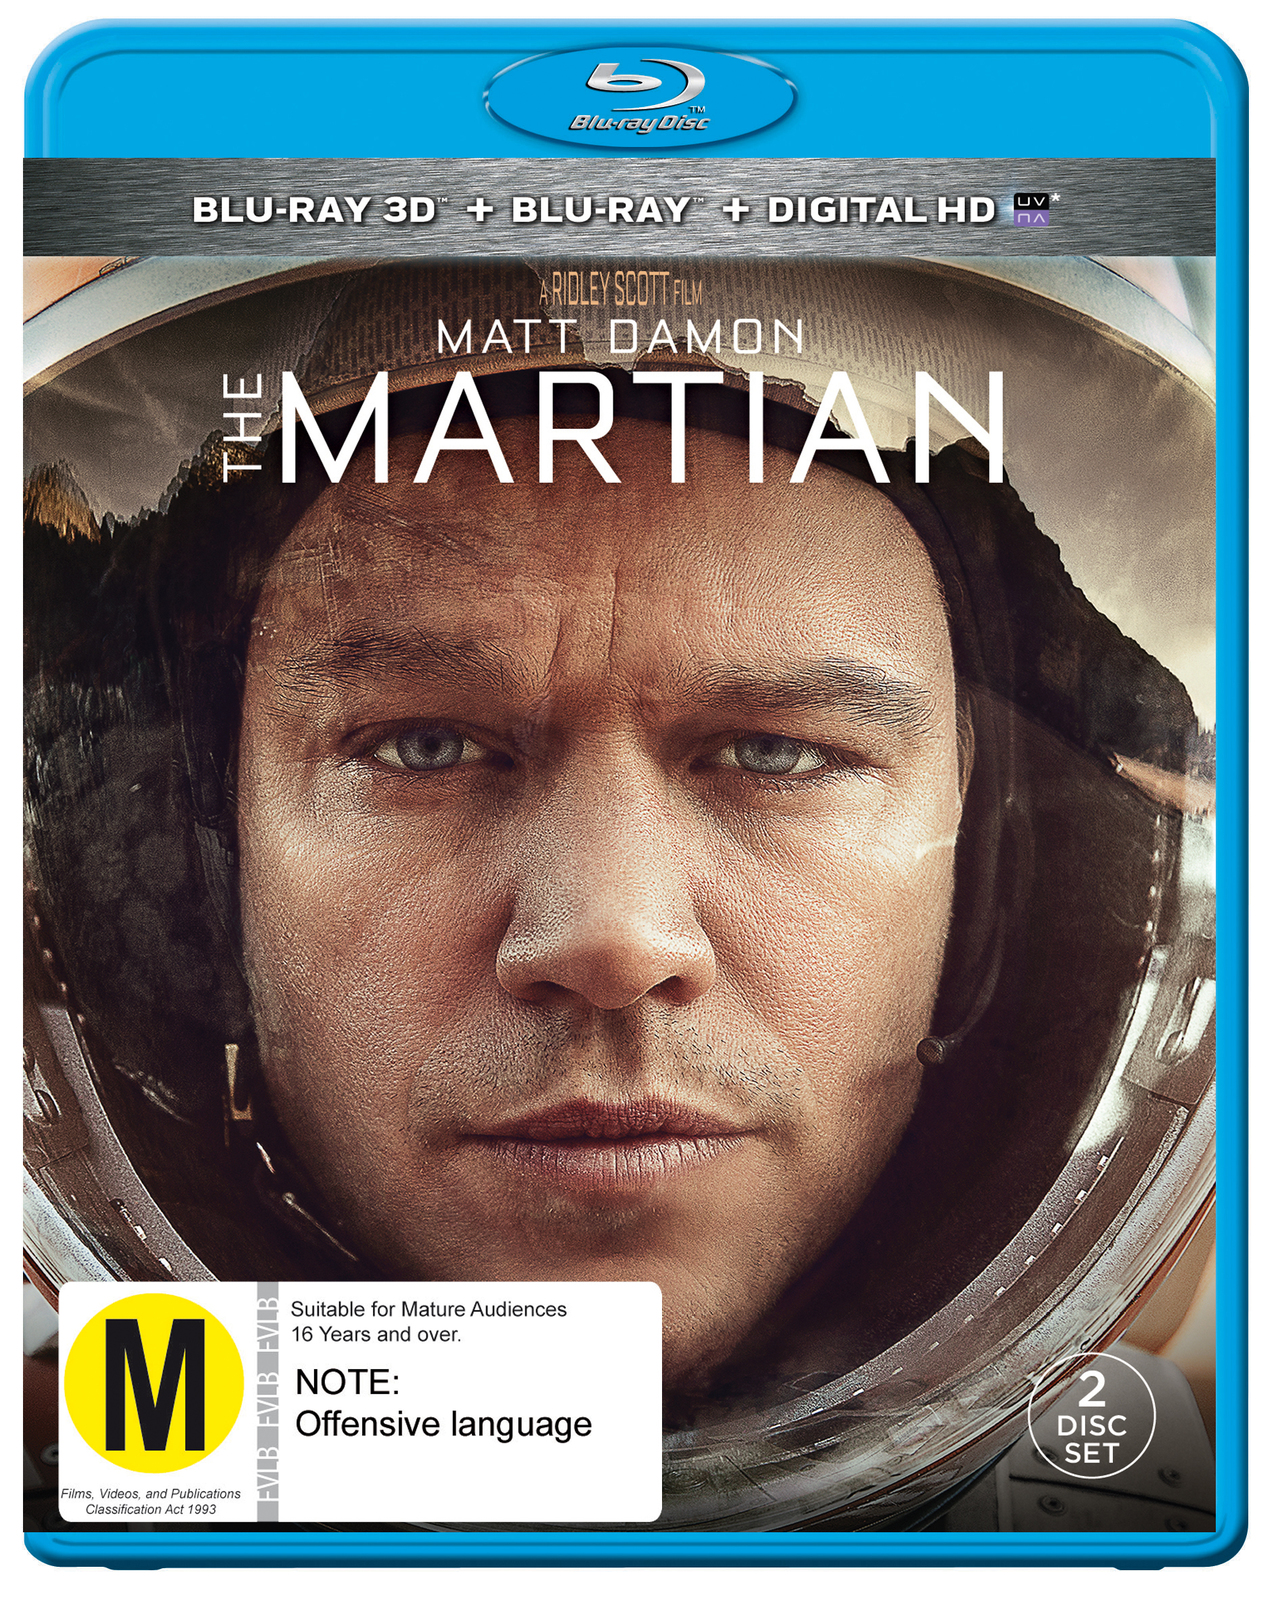 The Martian on Blu-ray, 3D Blu-ray, UV image